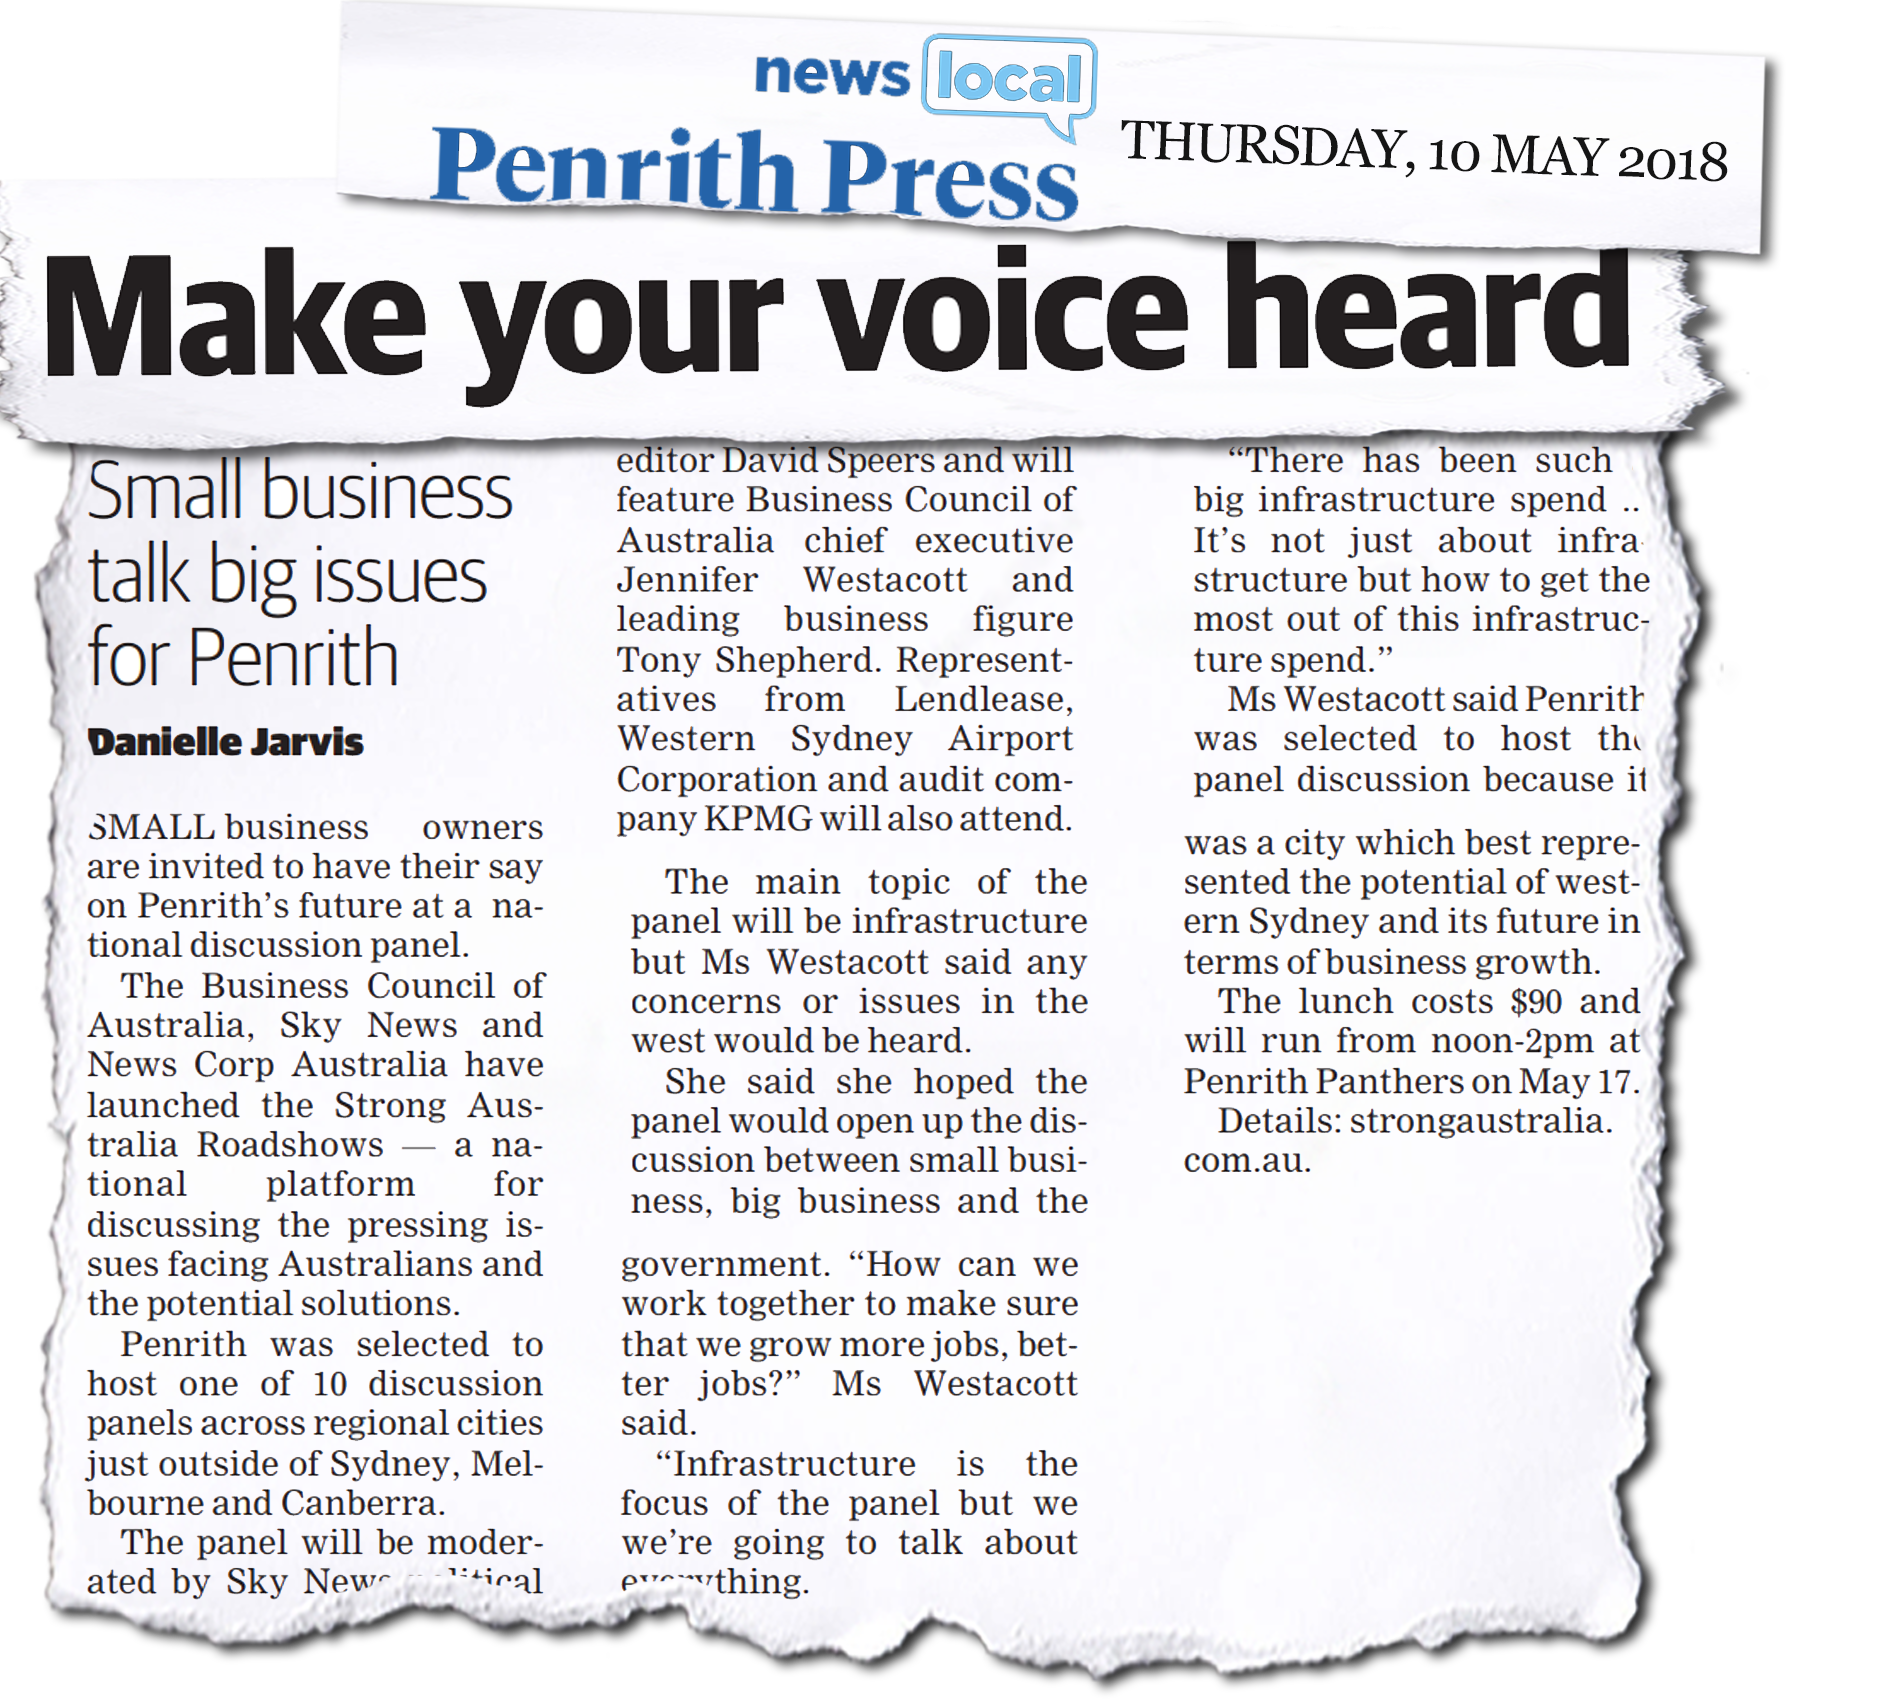 Penrith Press